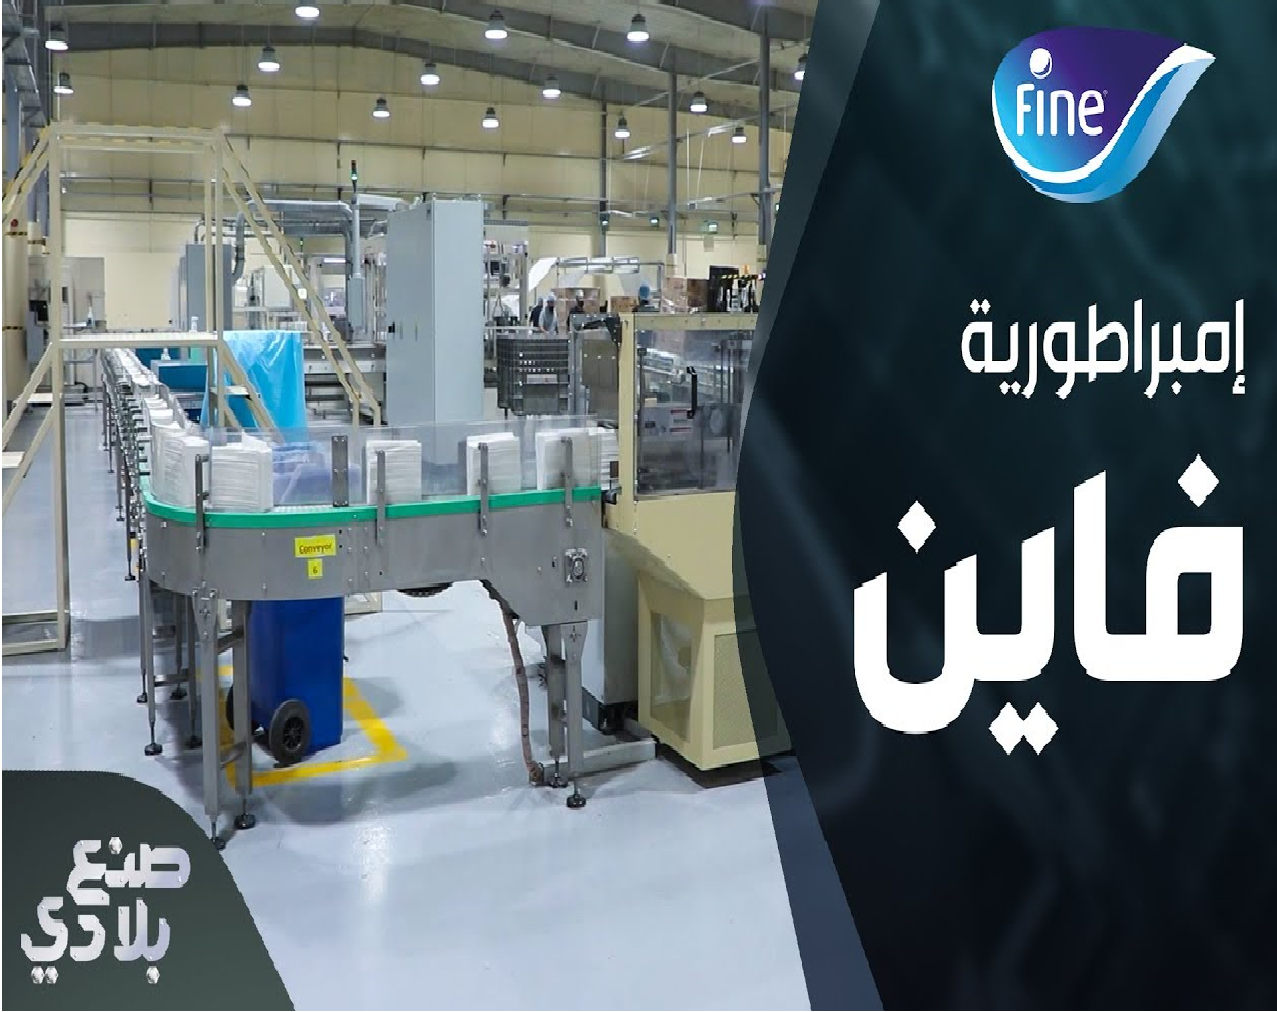 Fine Hygienic Holding featured on Locally Made Program